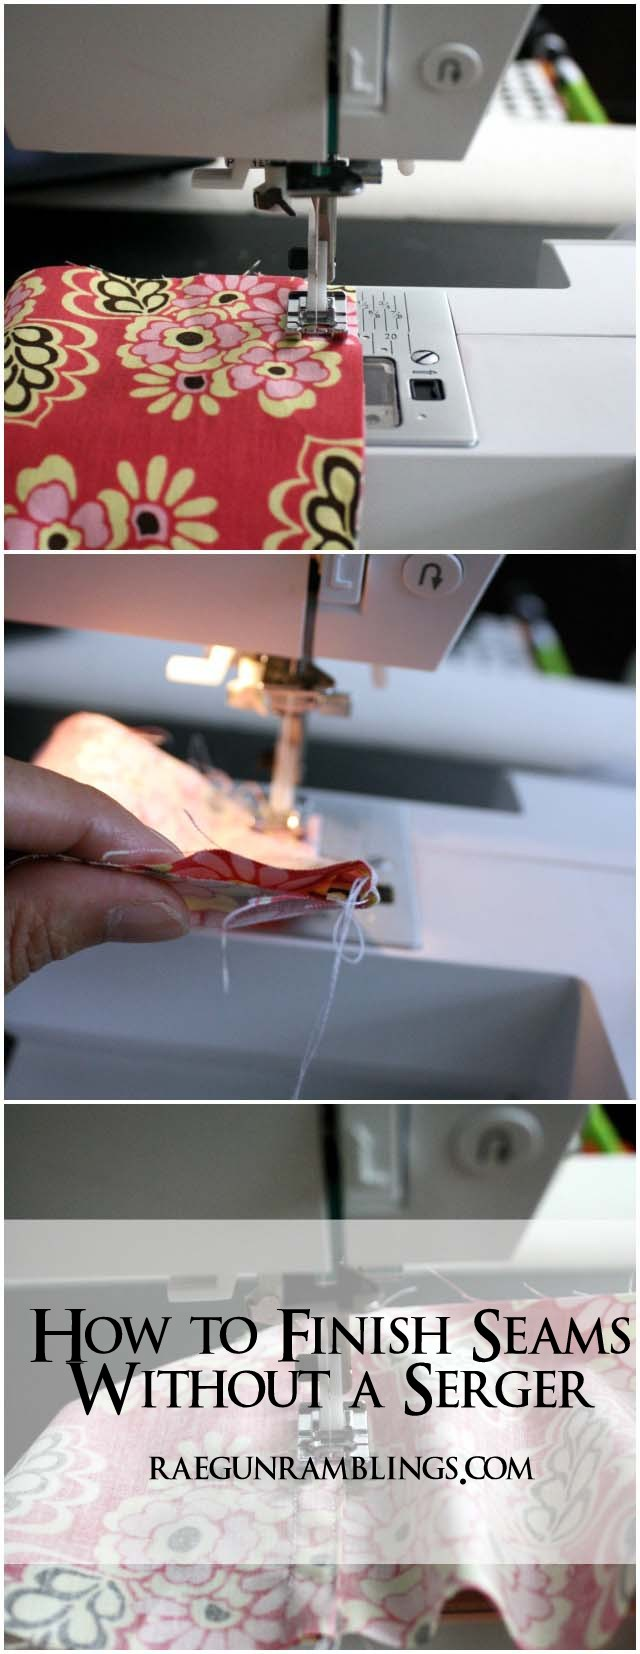 How to sew seams on sheer fabric- Rae Gun Ramblings